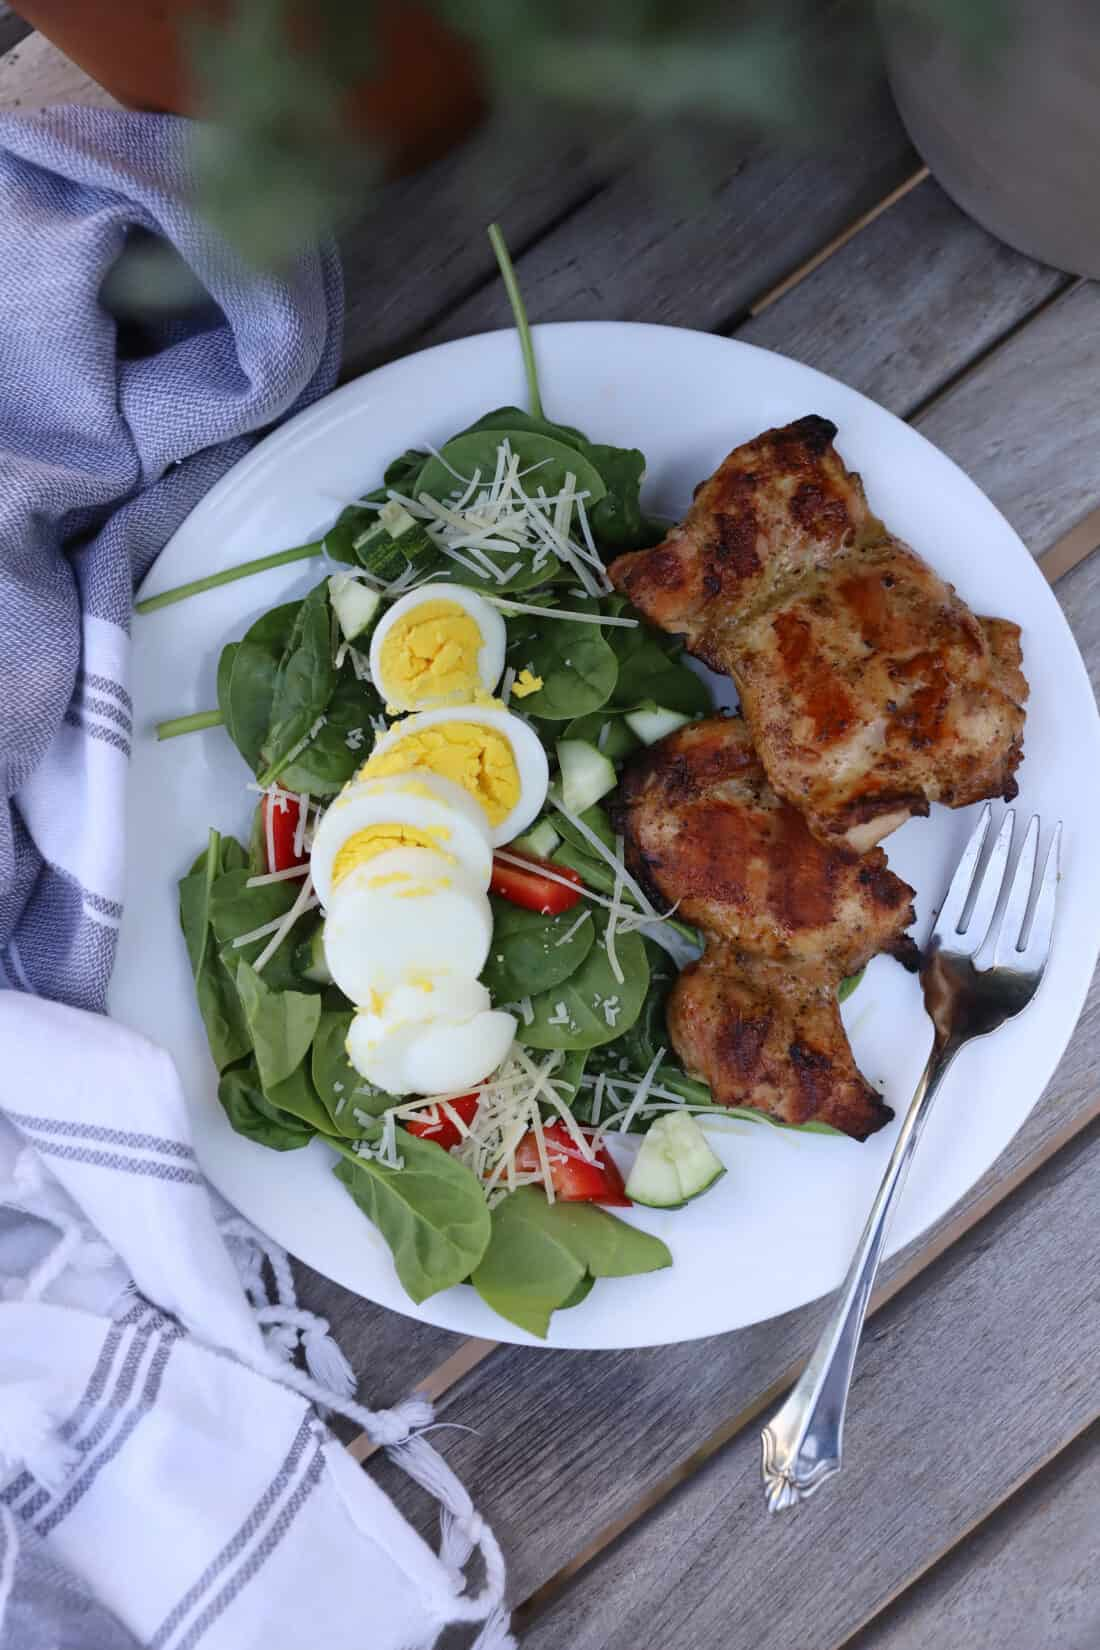 Grilled Smoked Chicken Thighs with a side salad on a wooden table